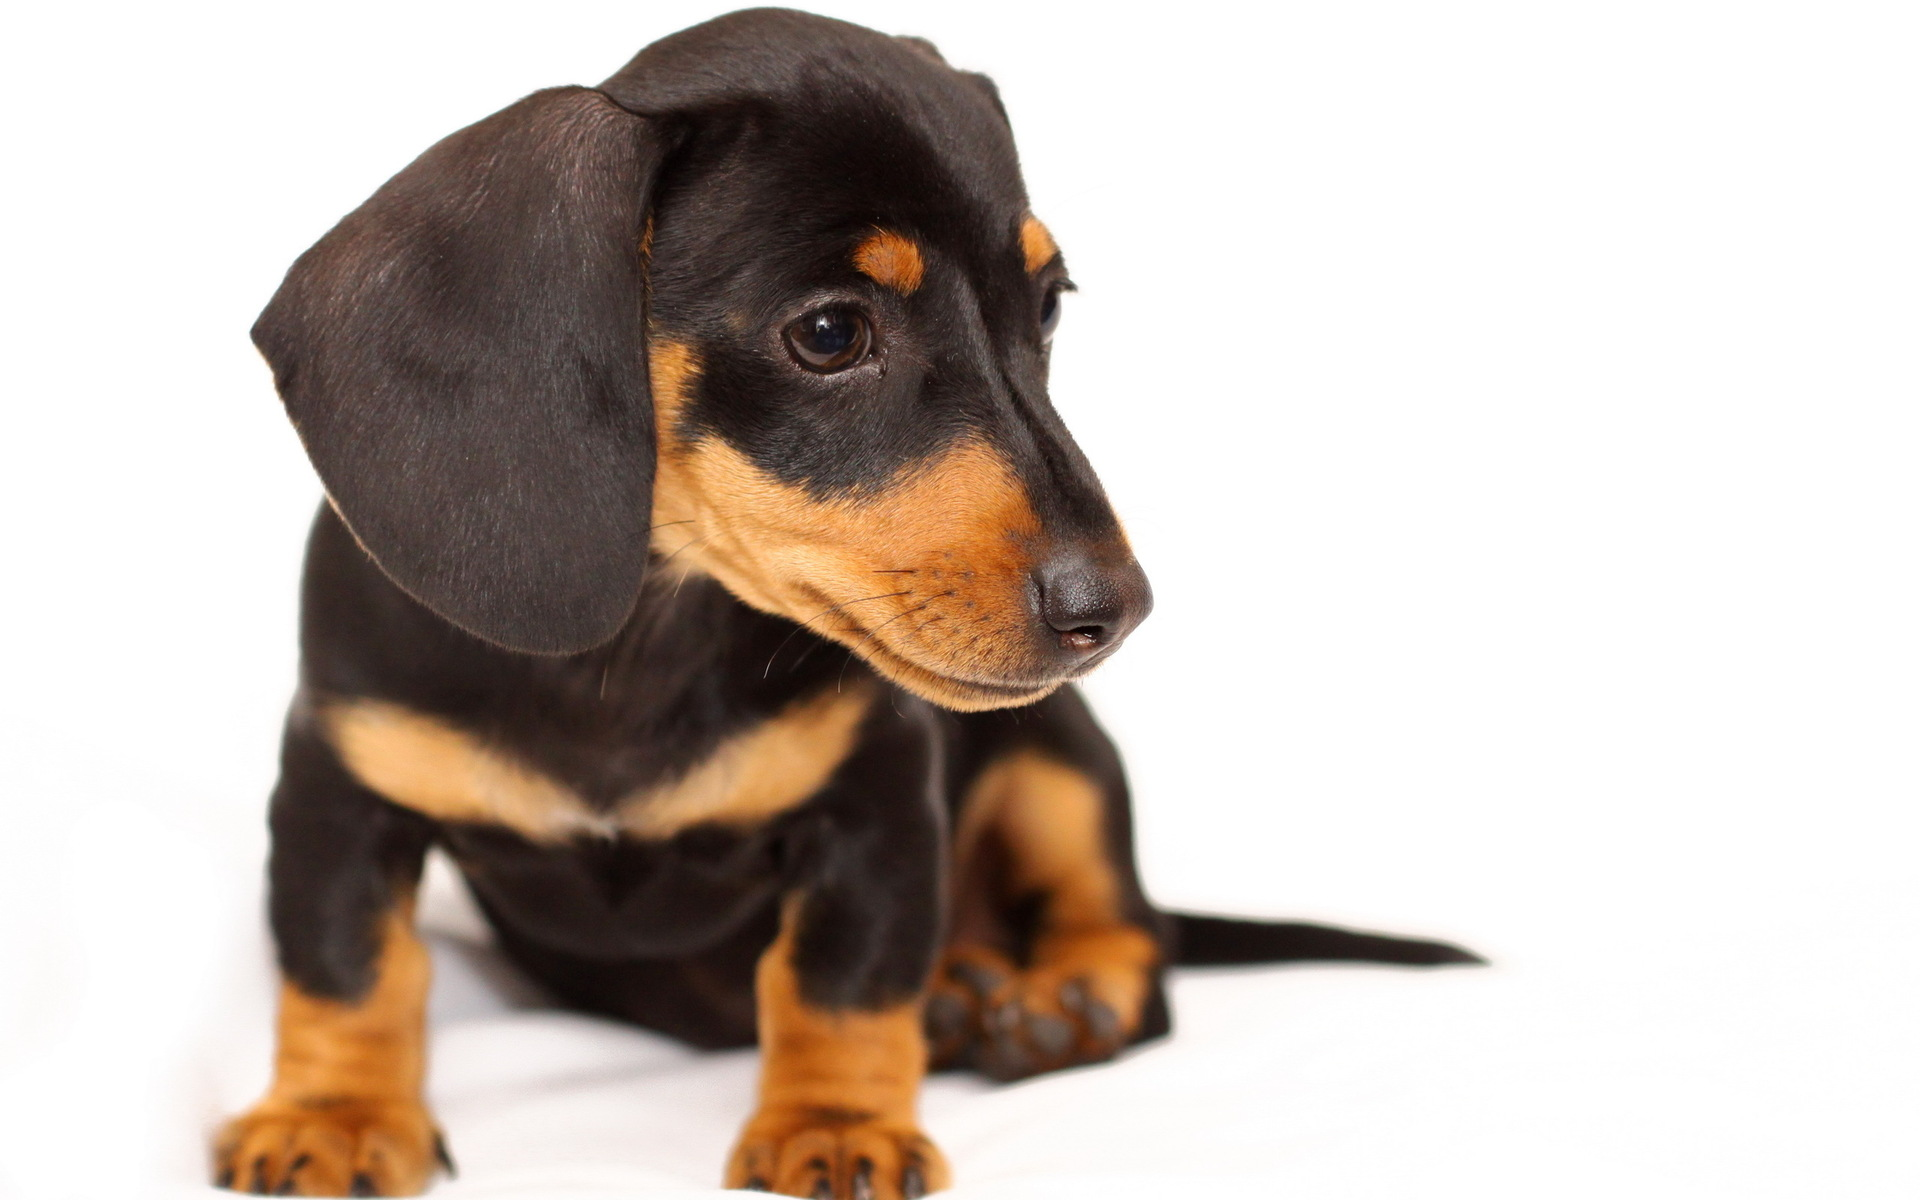 Dachshund Full HD Wallpaper And Background Image